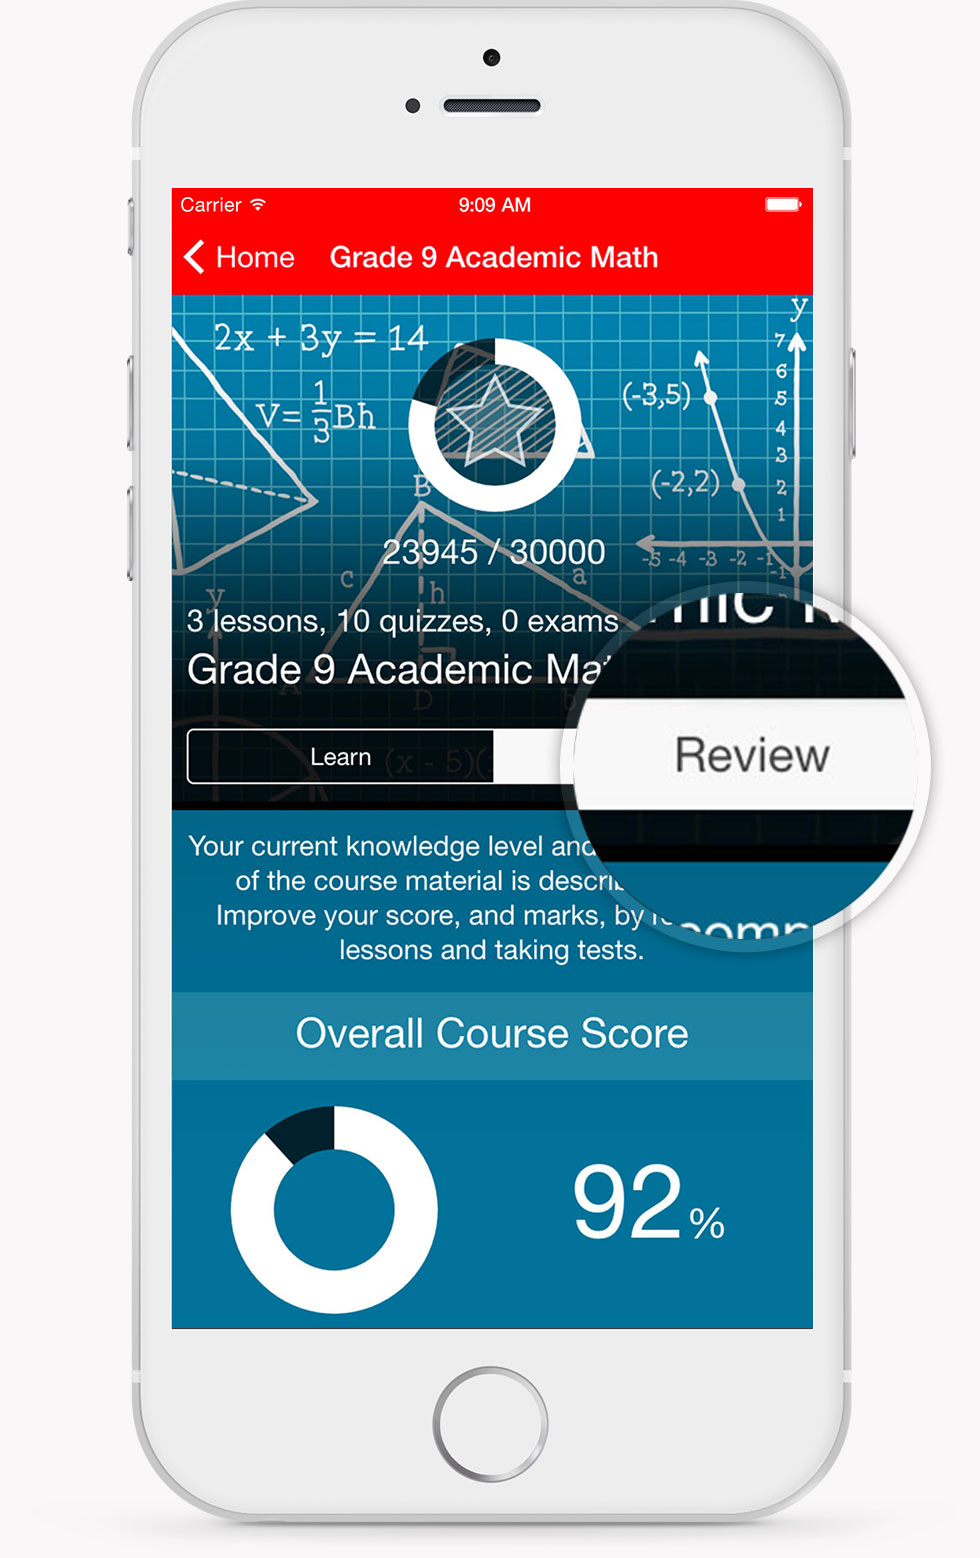 Grade 9 Academic Math Review Screen